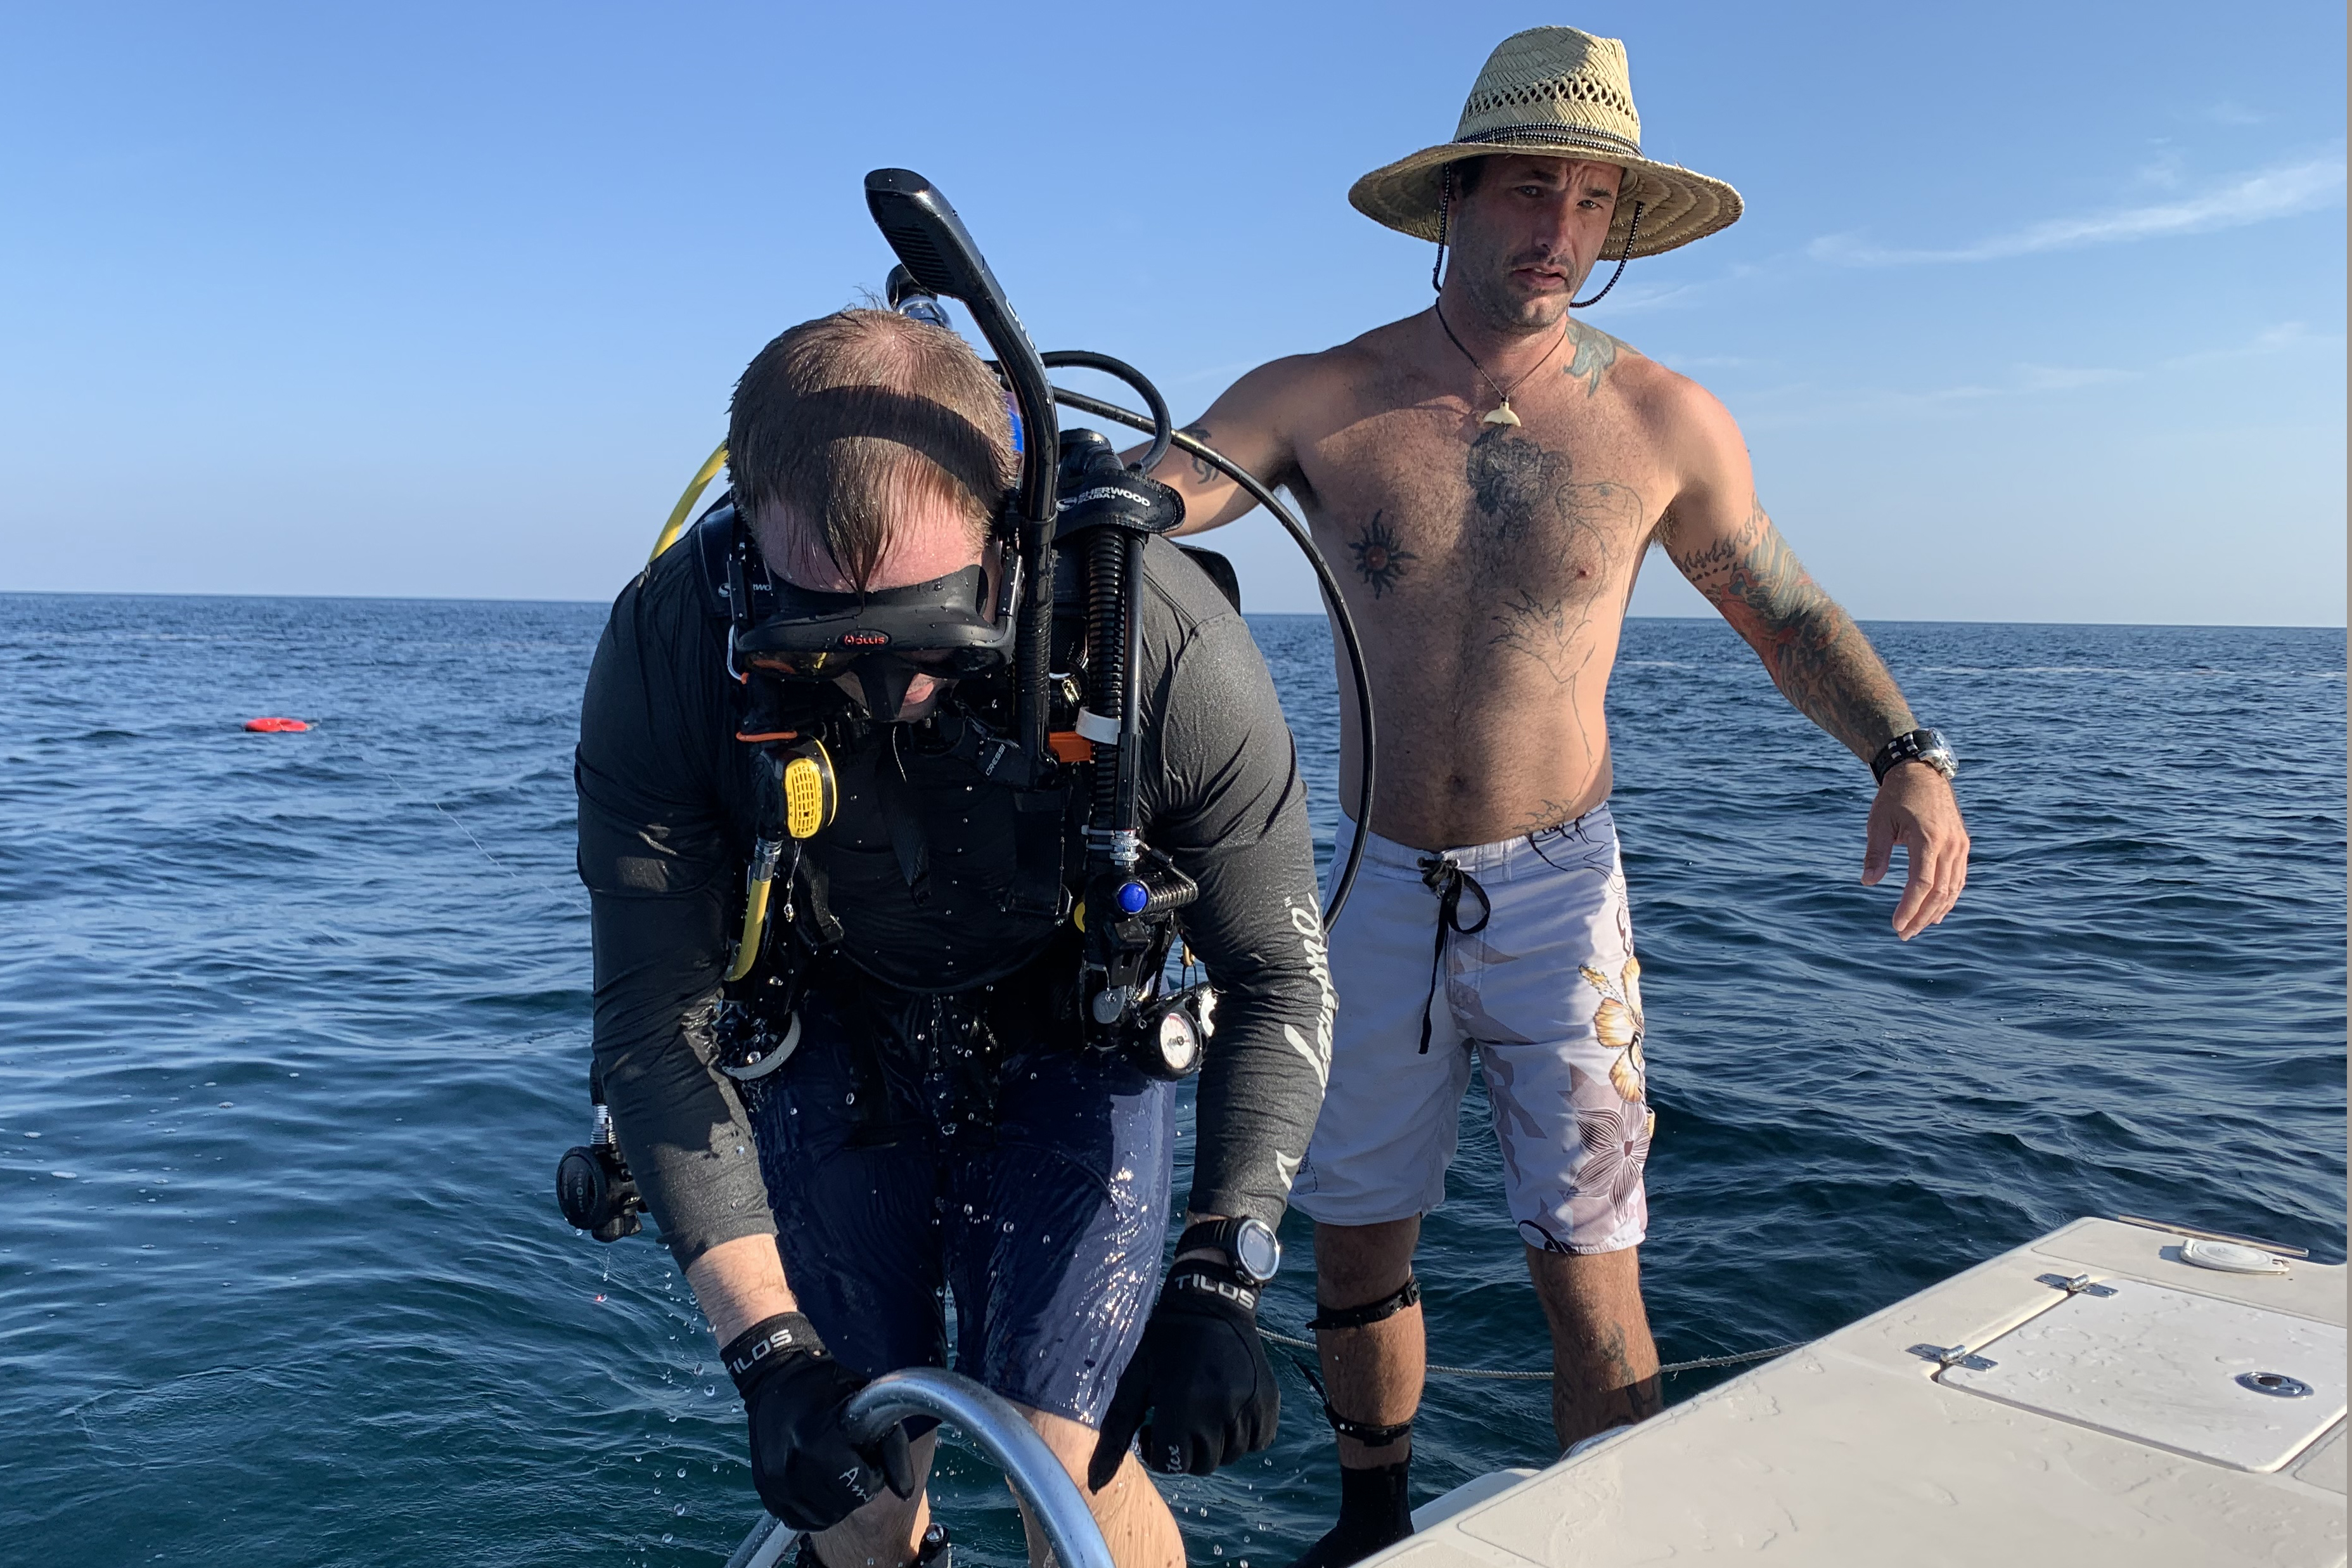 Caption: Shawn Campbell helps Justin Herris get back on the boat after a dive at the Circle of Heroes military memorial off the coast of Clearwater, Fla., Credit: Stephanie Colombini/American Homefront